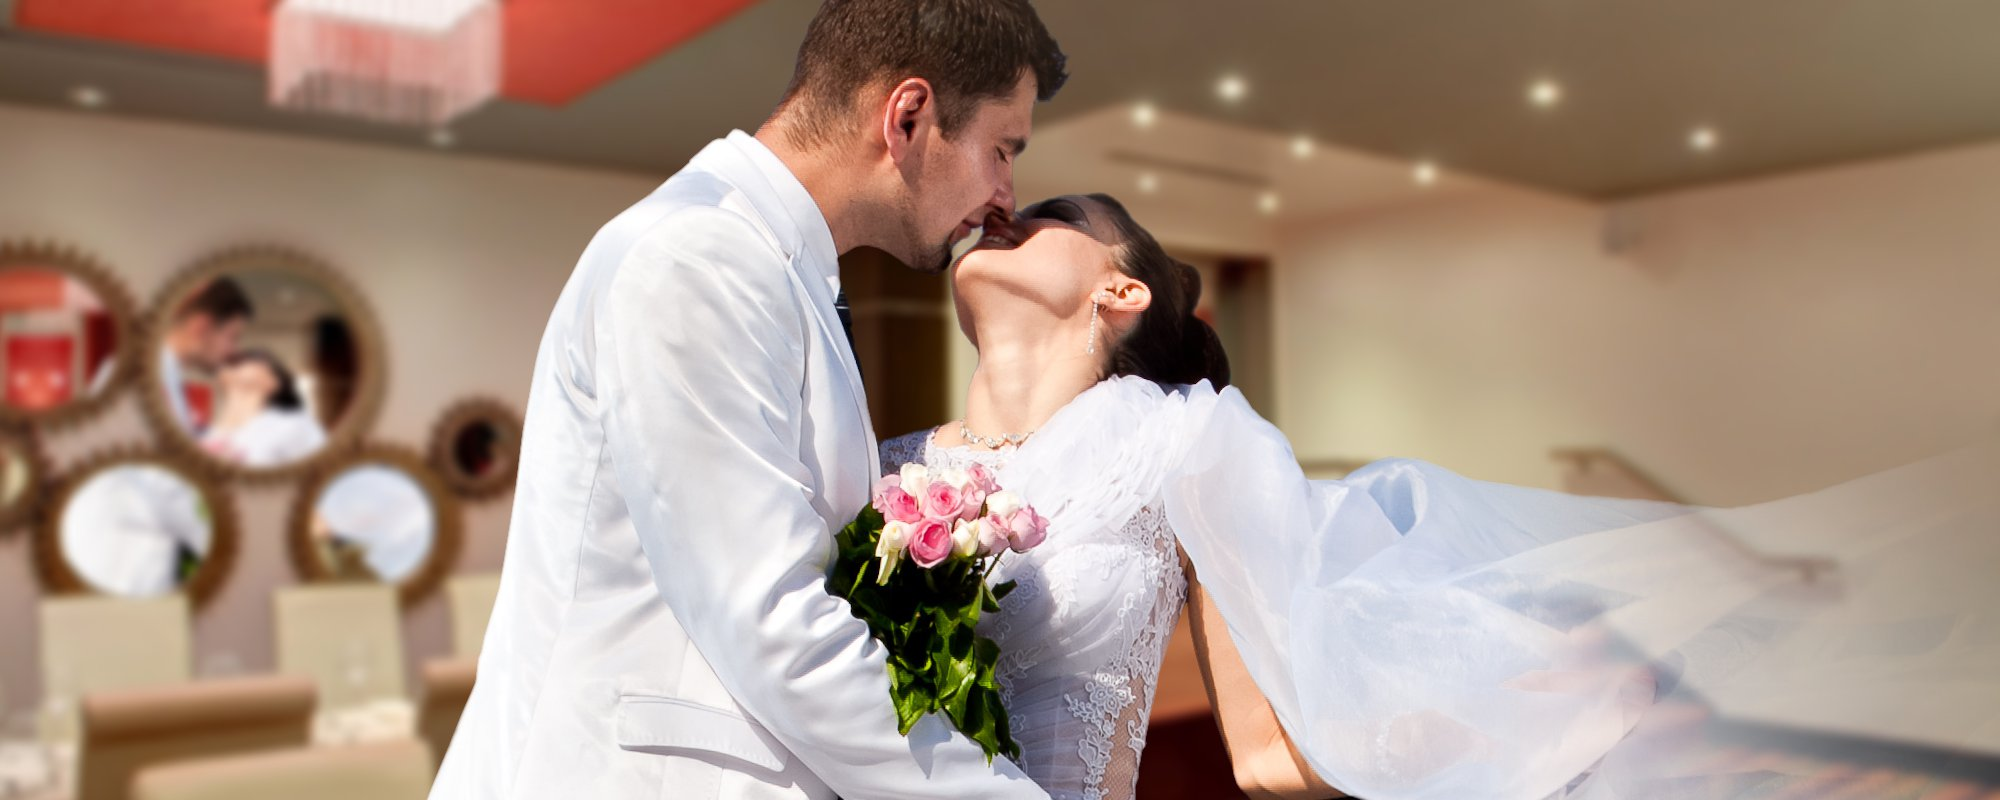 Weddings at Sterling Inn & Spa